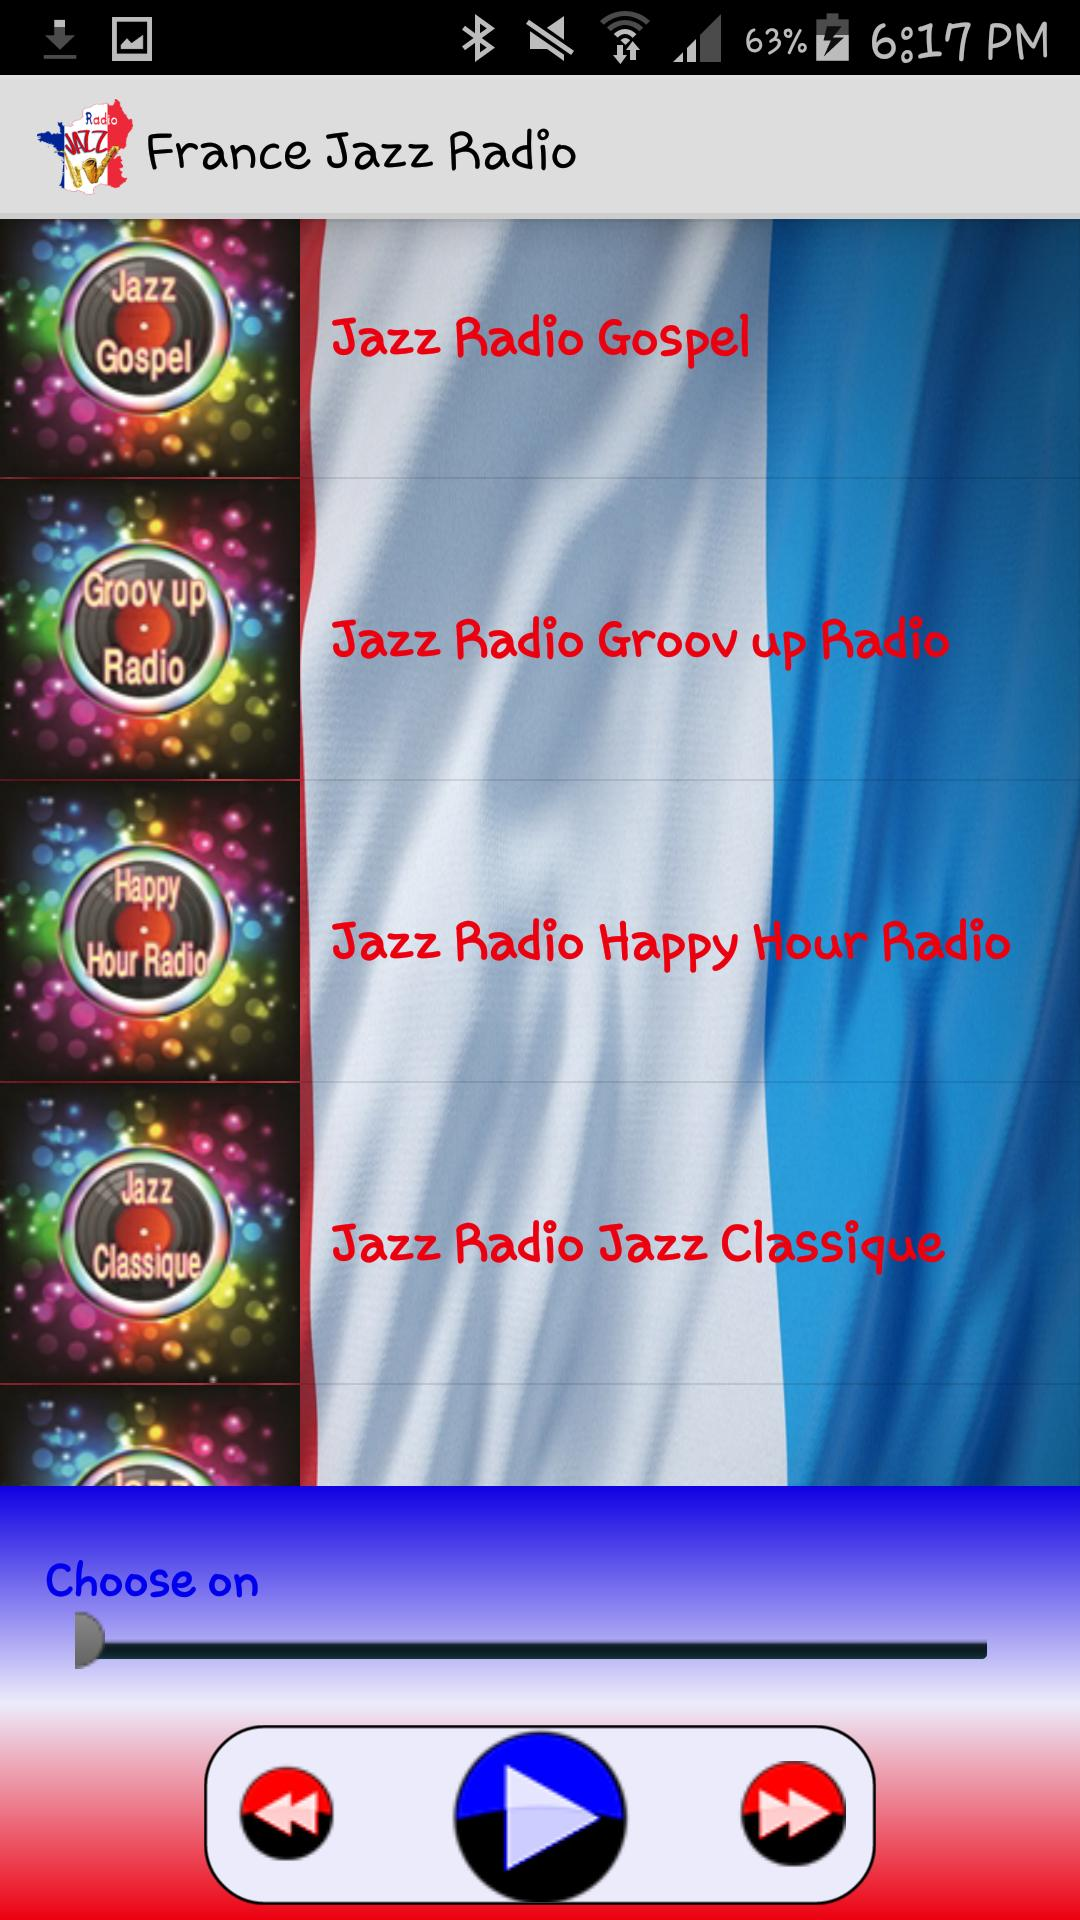 Jazz Radio France for Android - APK Download